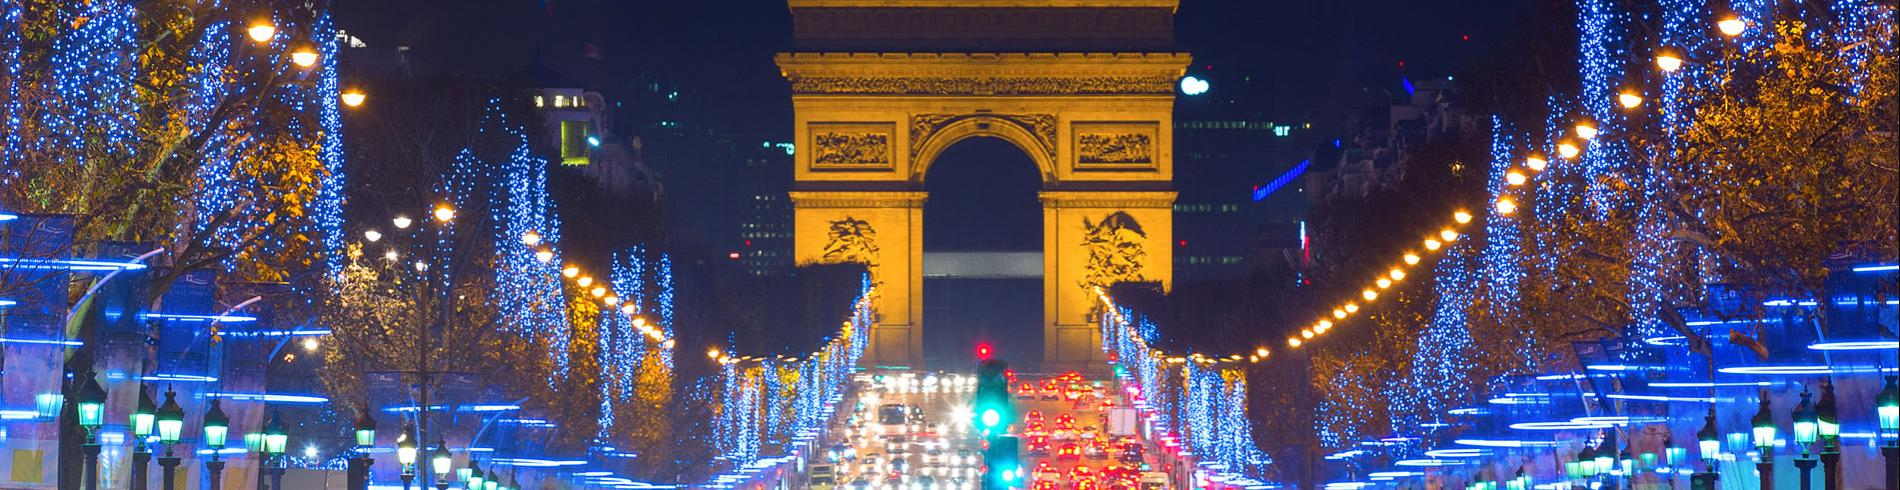 The Champs Elysees and the Arc de Triomphe lit up with Christmas lights